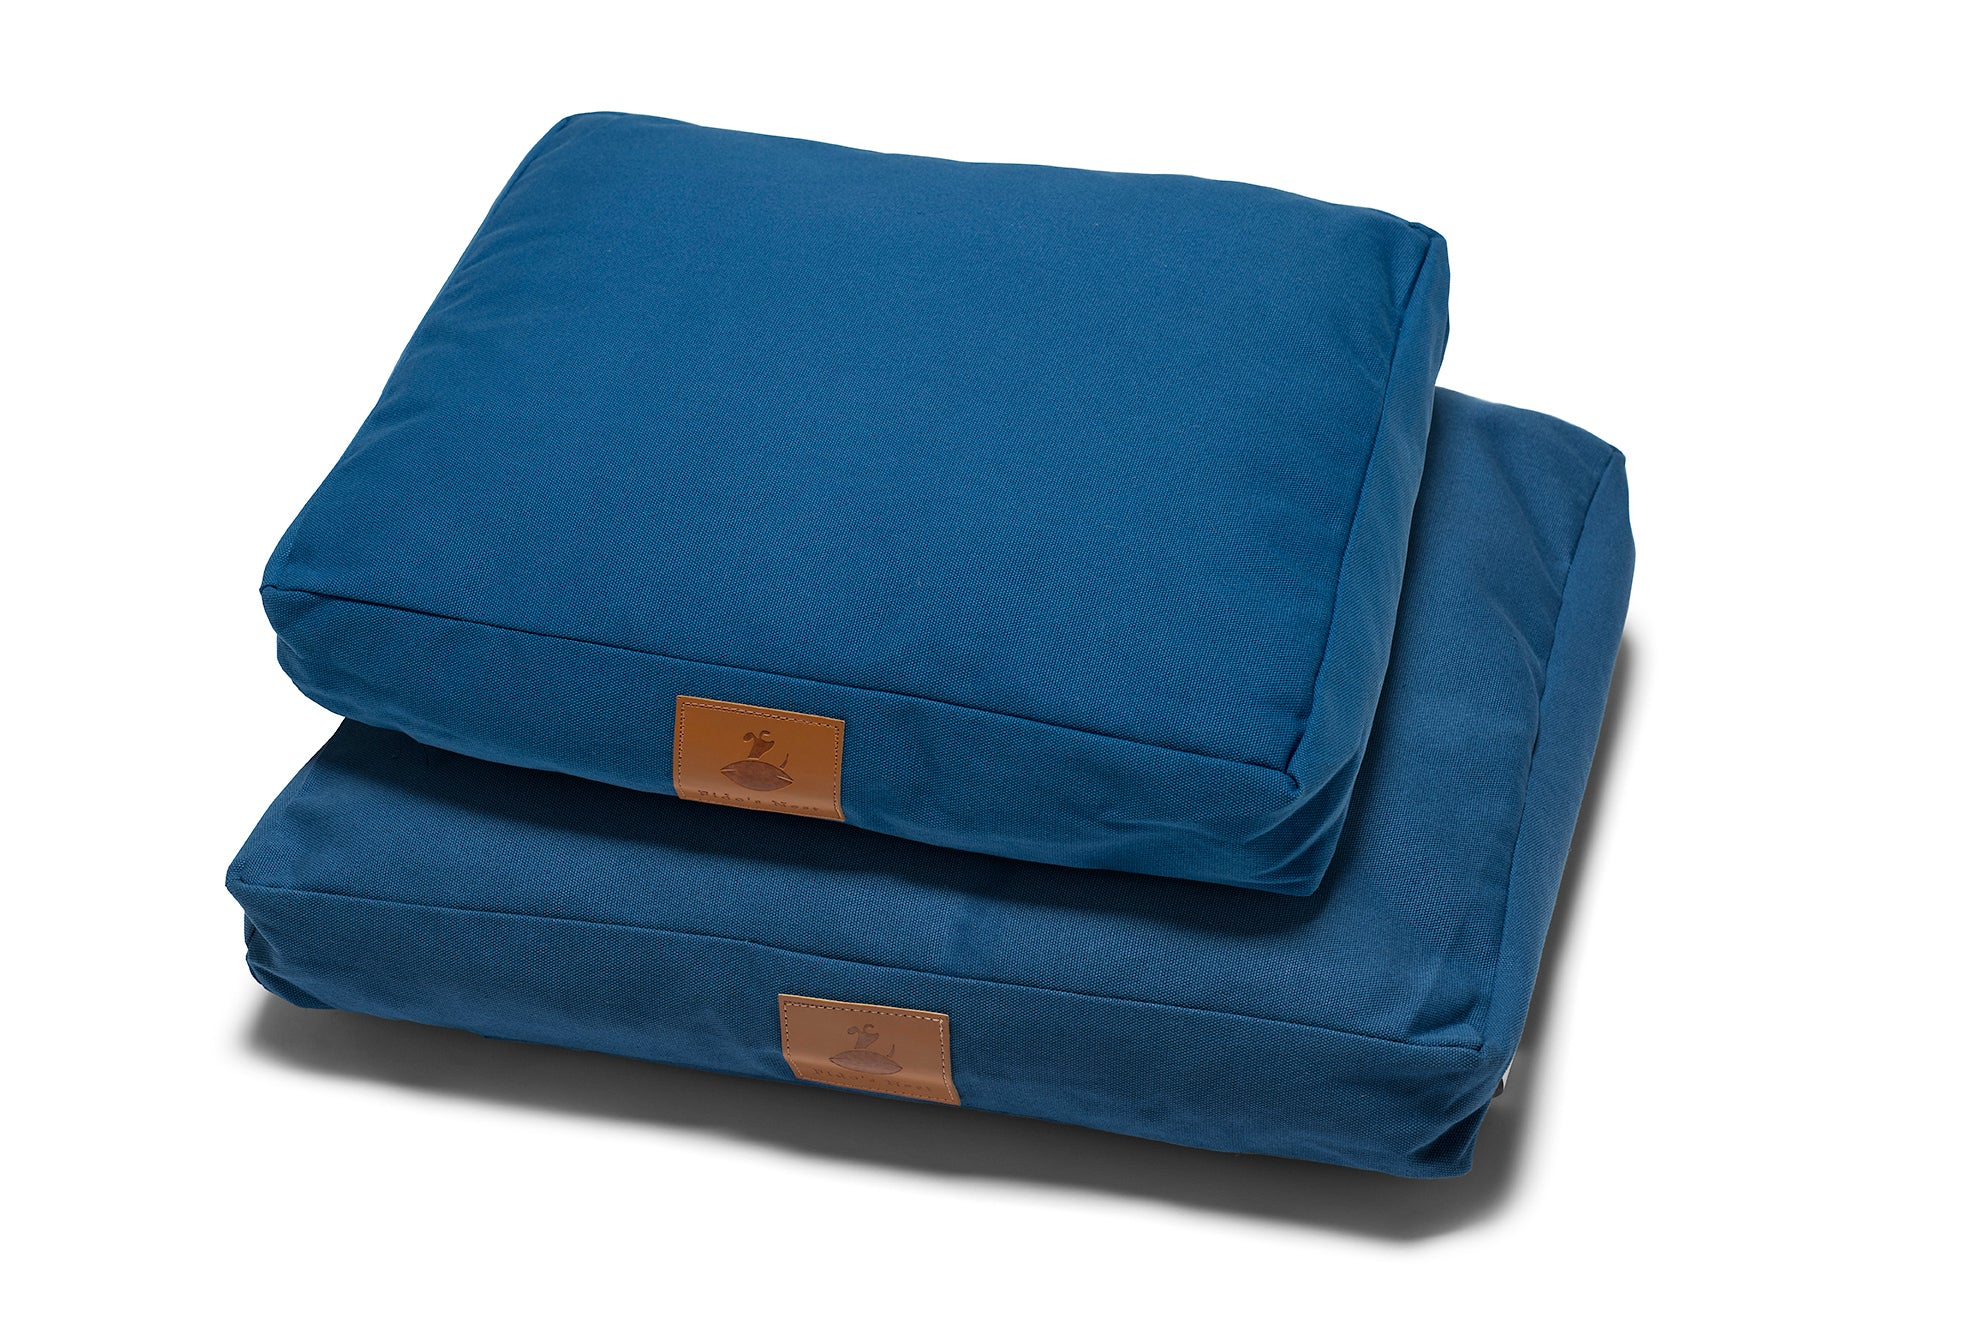 Lupo's Nest | Luxury modern pillow dog bed. Eco-friendly, hypoallergenic, durable and machine washable. Choice of wool or hollow-fibre filling. In Azure Blue.